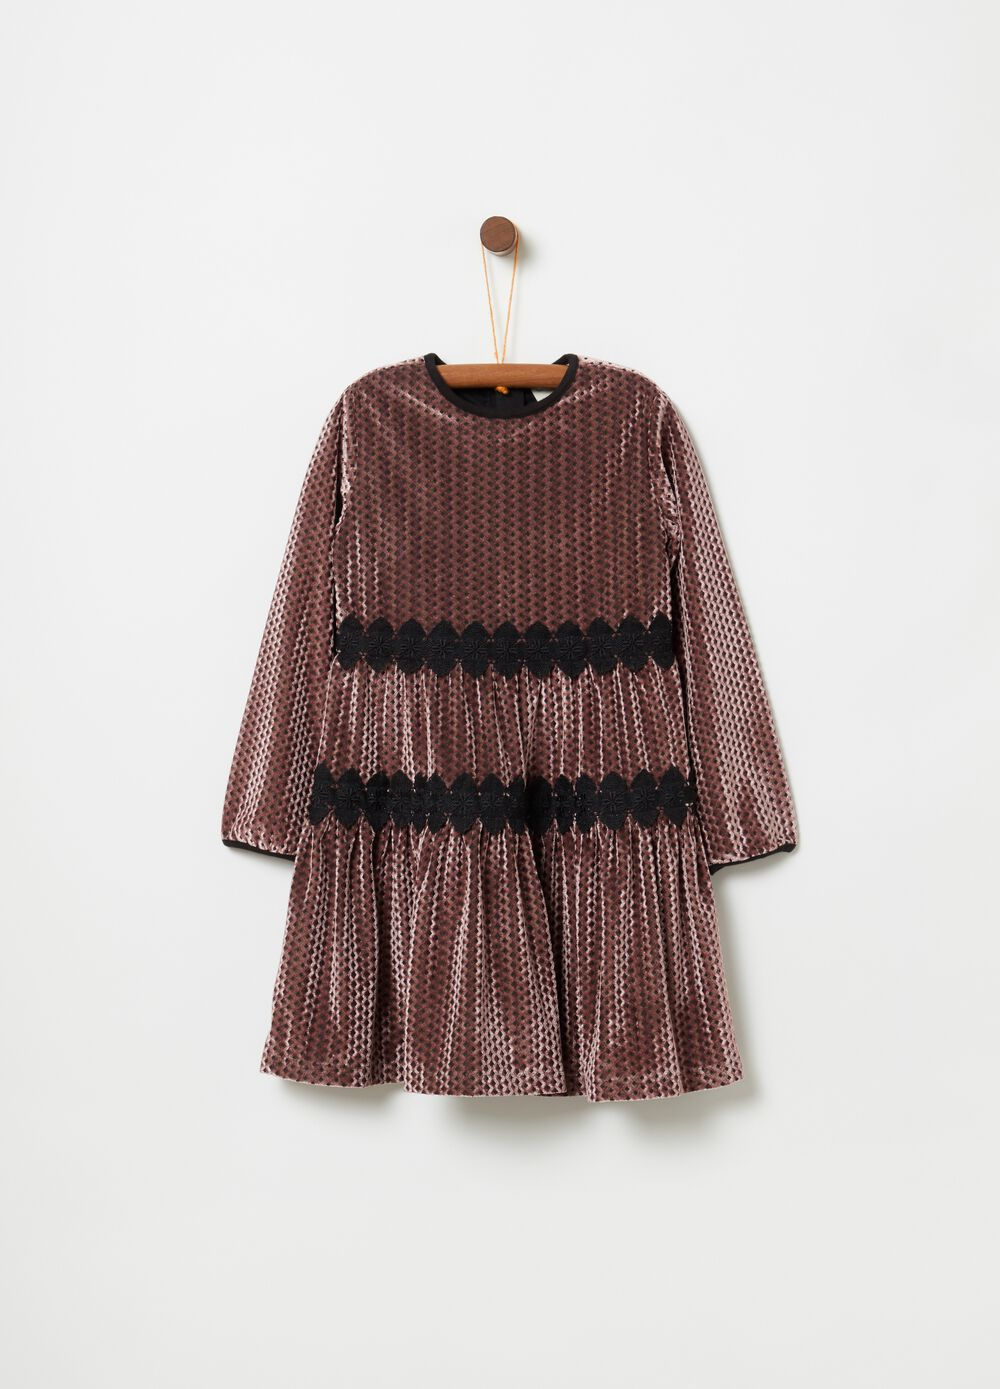 Velvet-effect dress with long sleeves